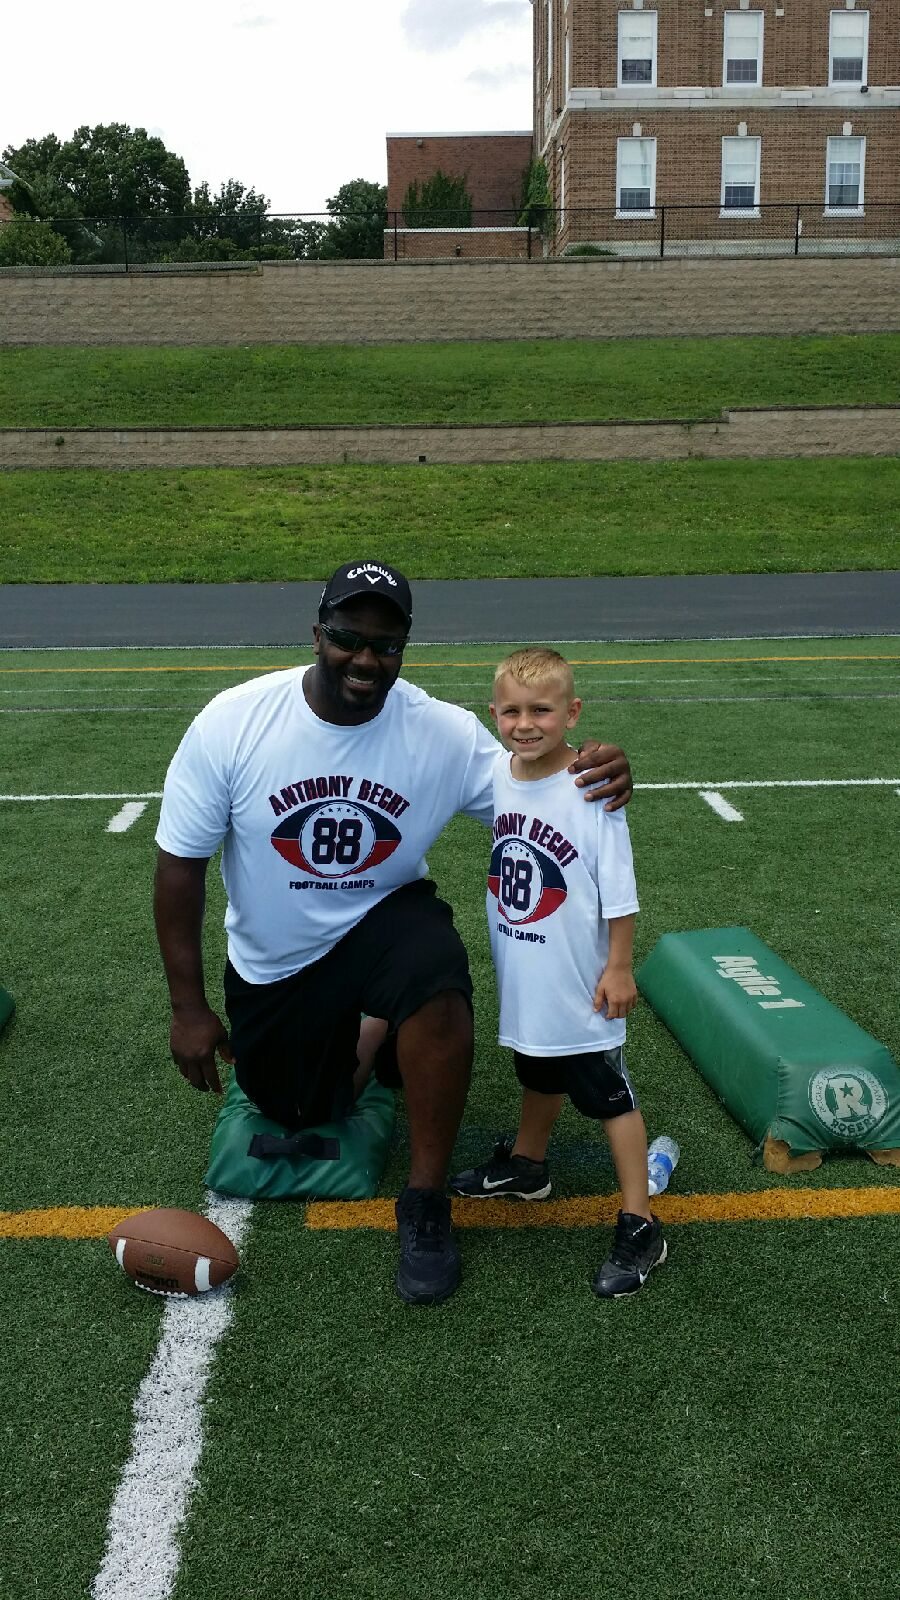 (Former Philadelphia Eagles Linebacker Jeremiah Trotter and Firefighter S. Caroluzzi's son, Sammy)